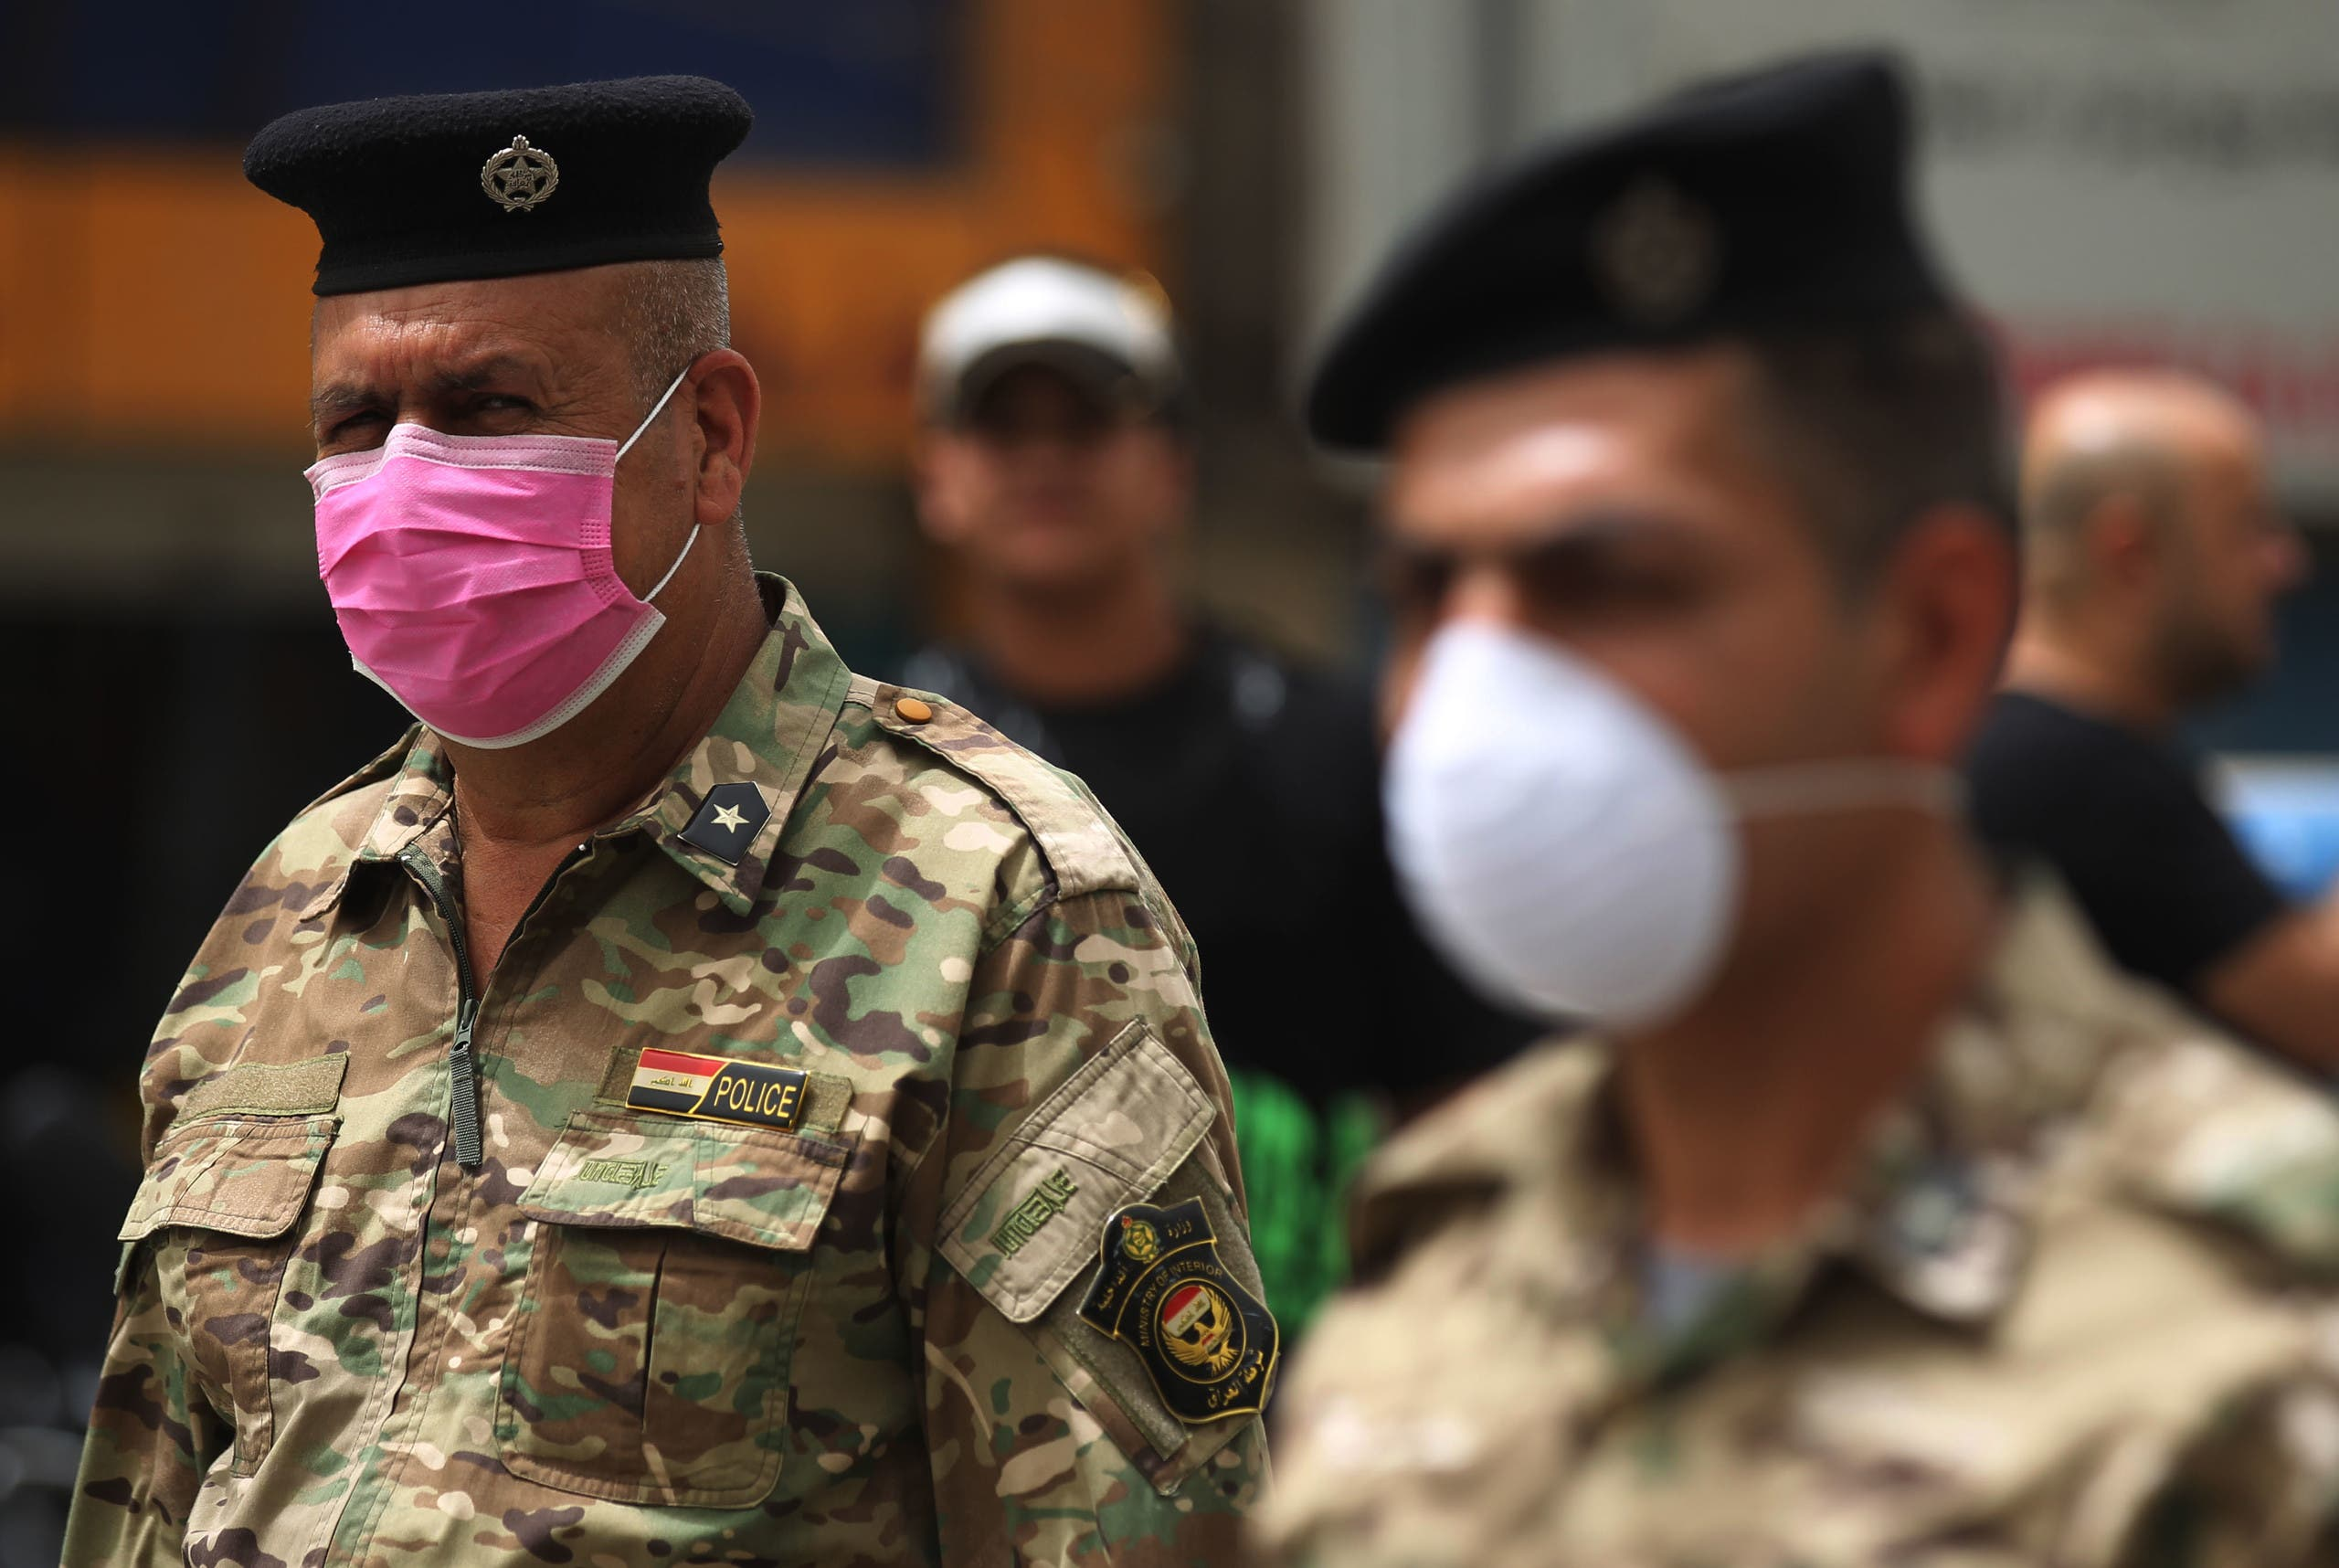 Members of the Iraqi security forces wearing protective masks keep watch at Tahrir Square in central Baghdad on May 5, 2020. (AFP)